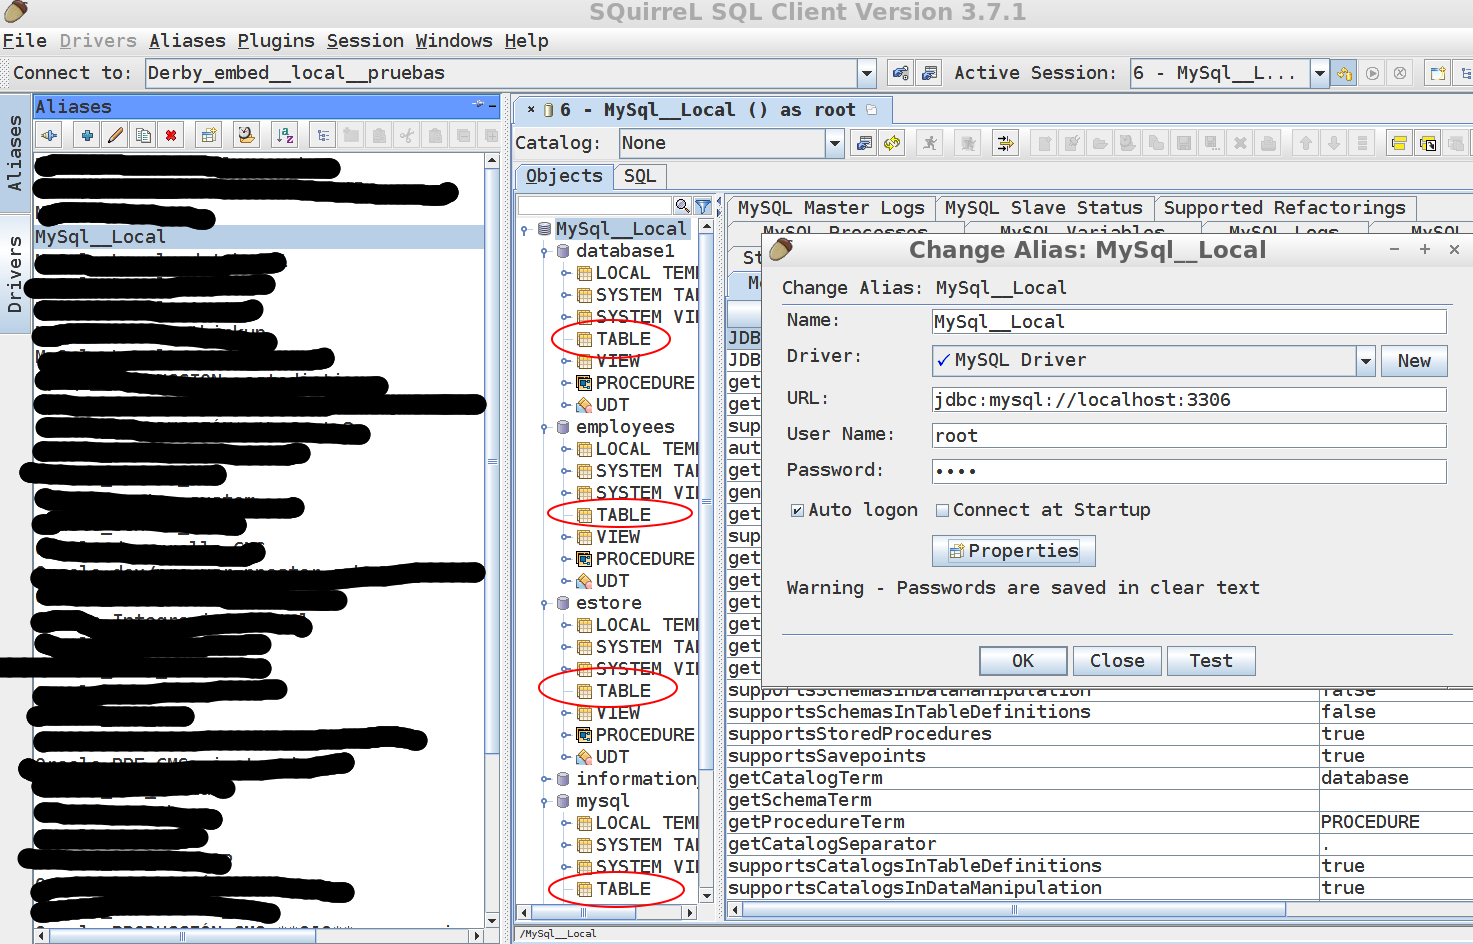 SQuirreL SQL Client / Bugs / #1315 MySQL: in Object View and